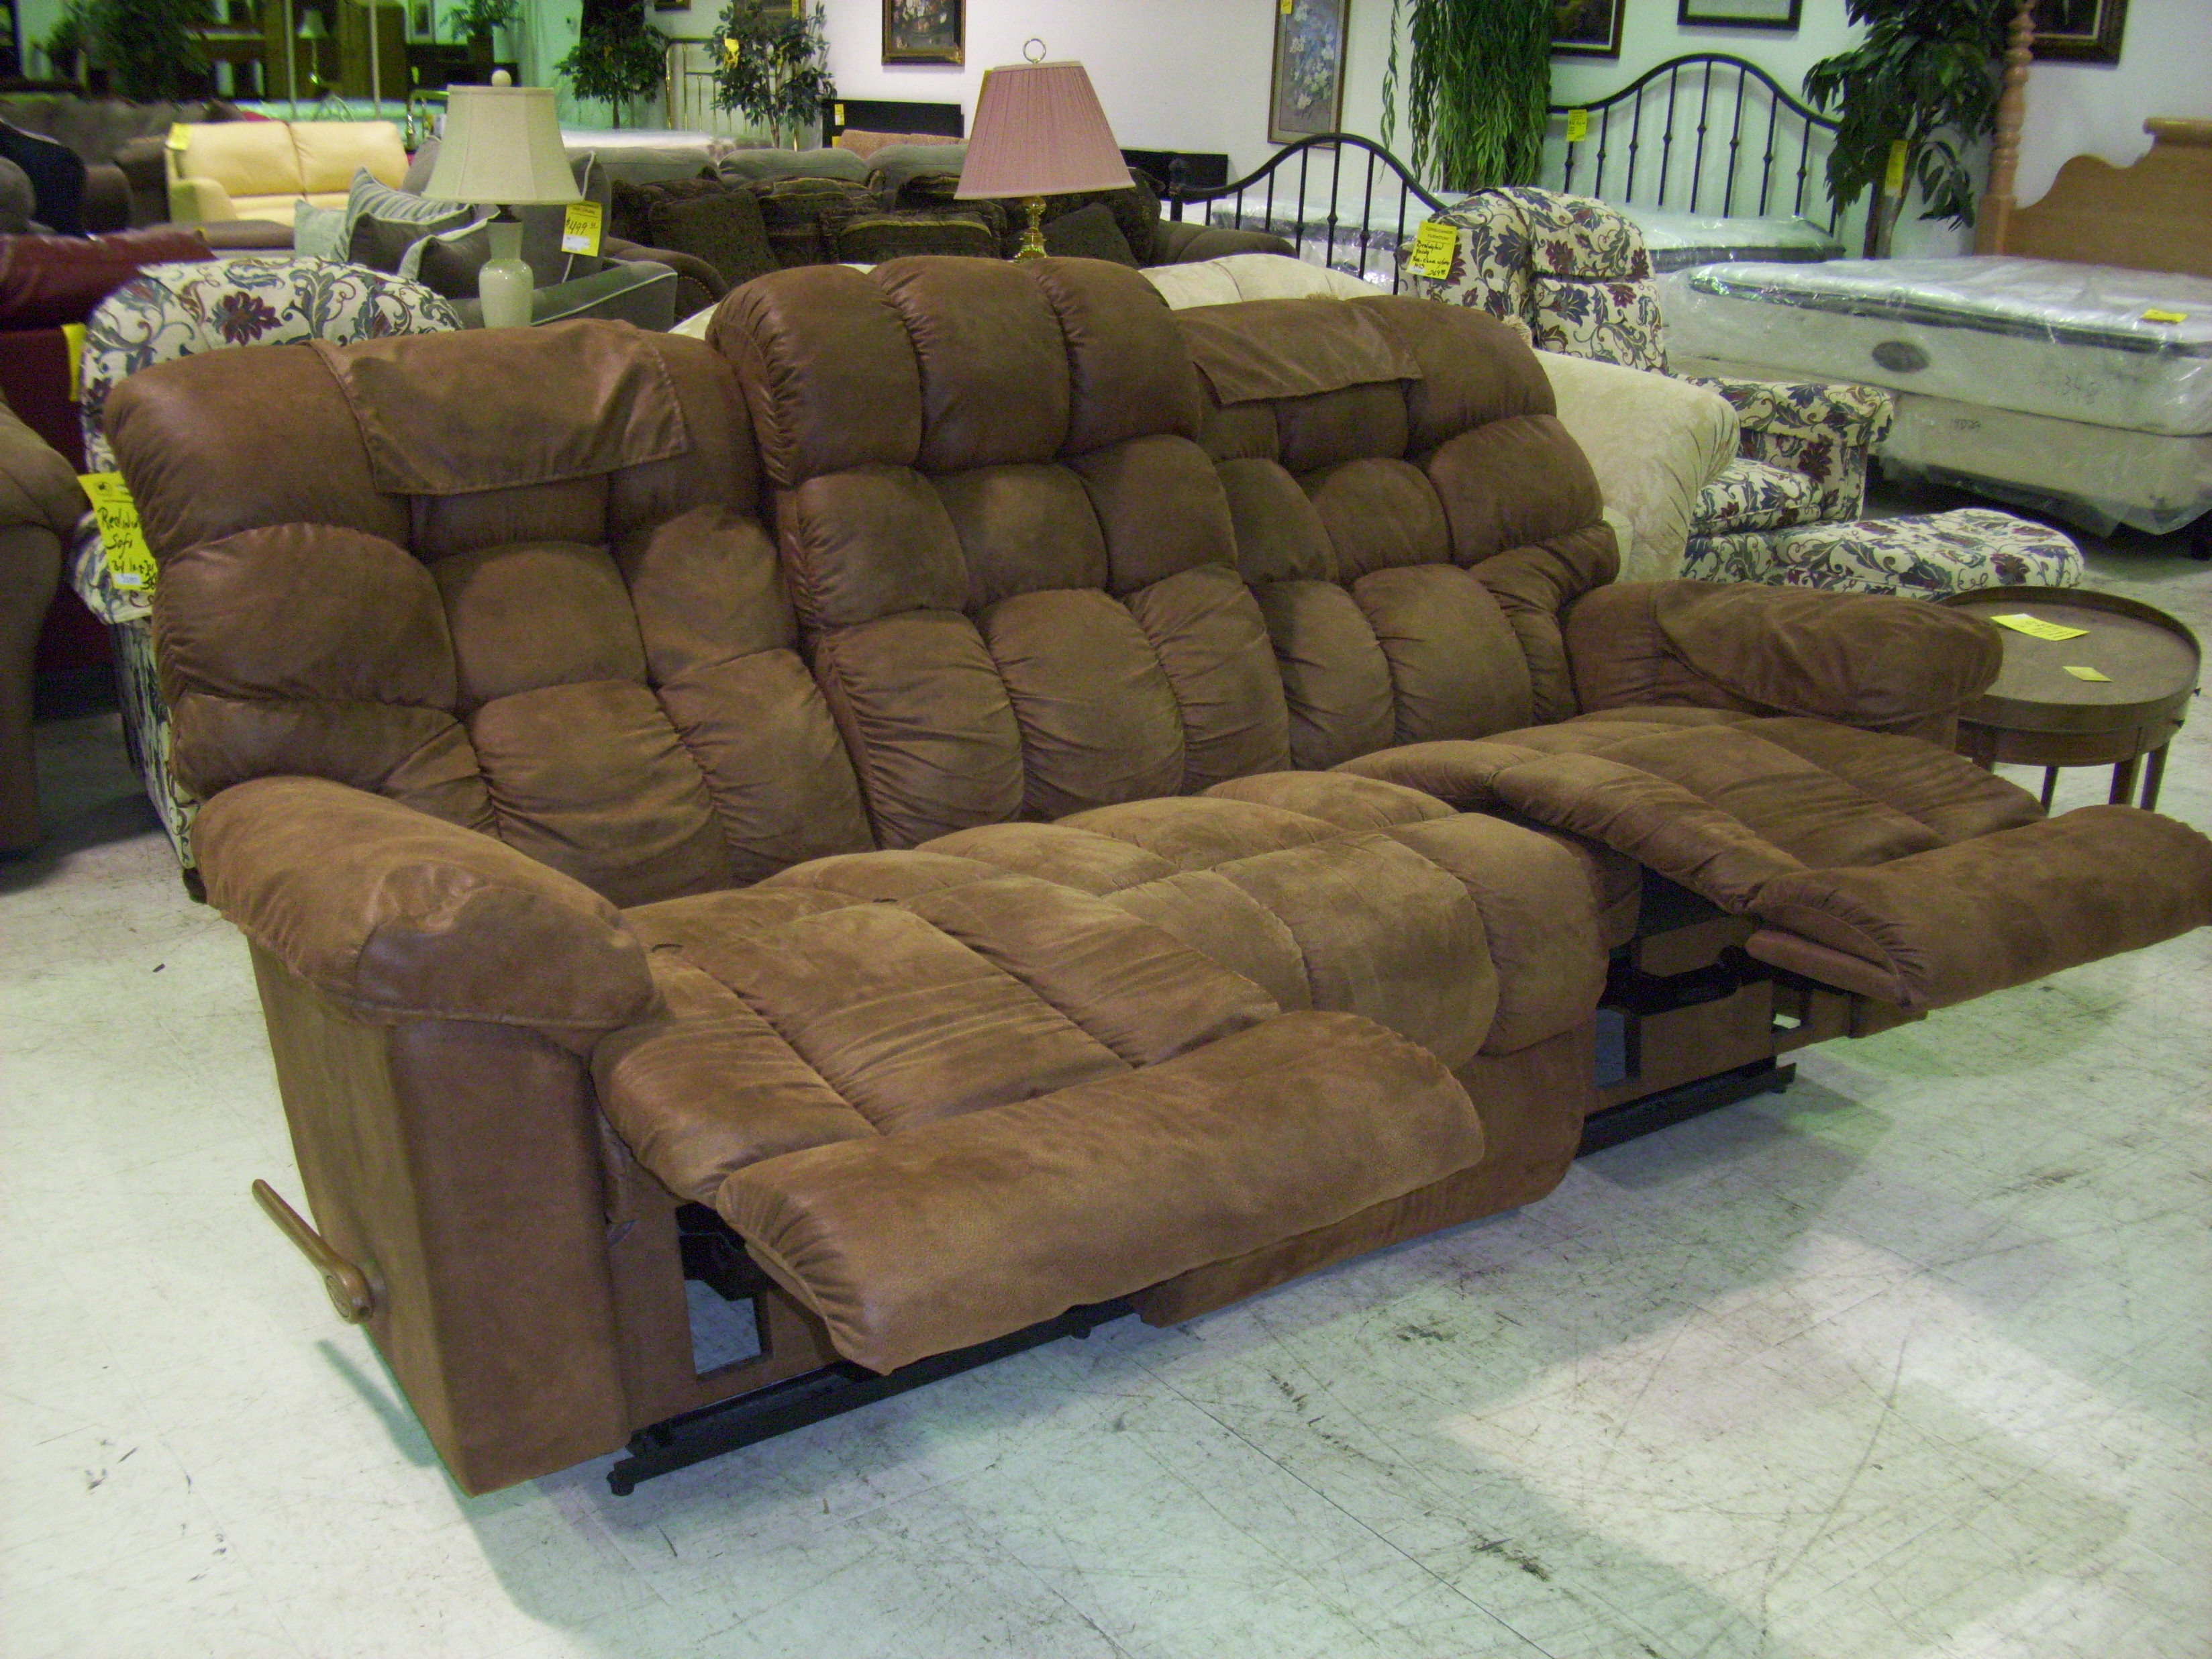 Recliners Sears | Power Recliner Chairs | Sears Recliners